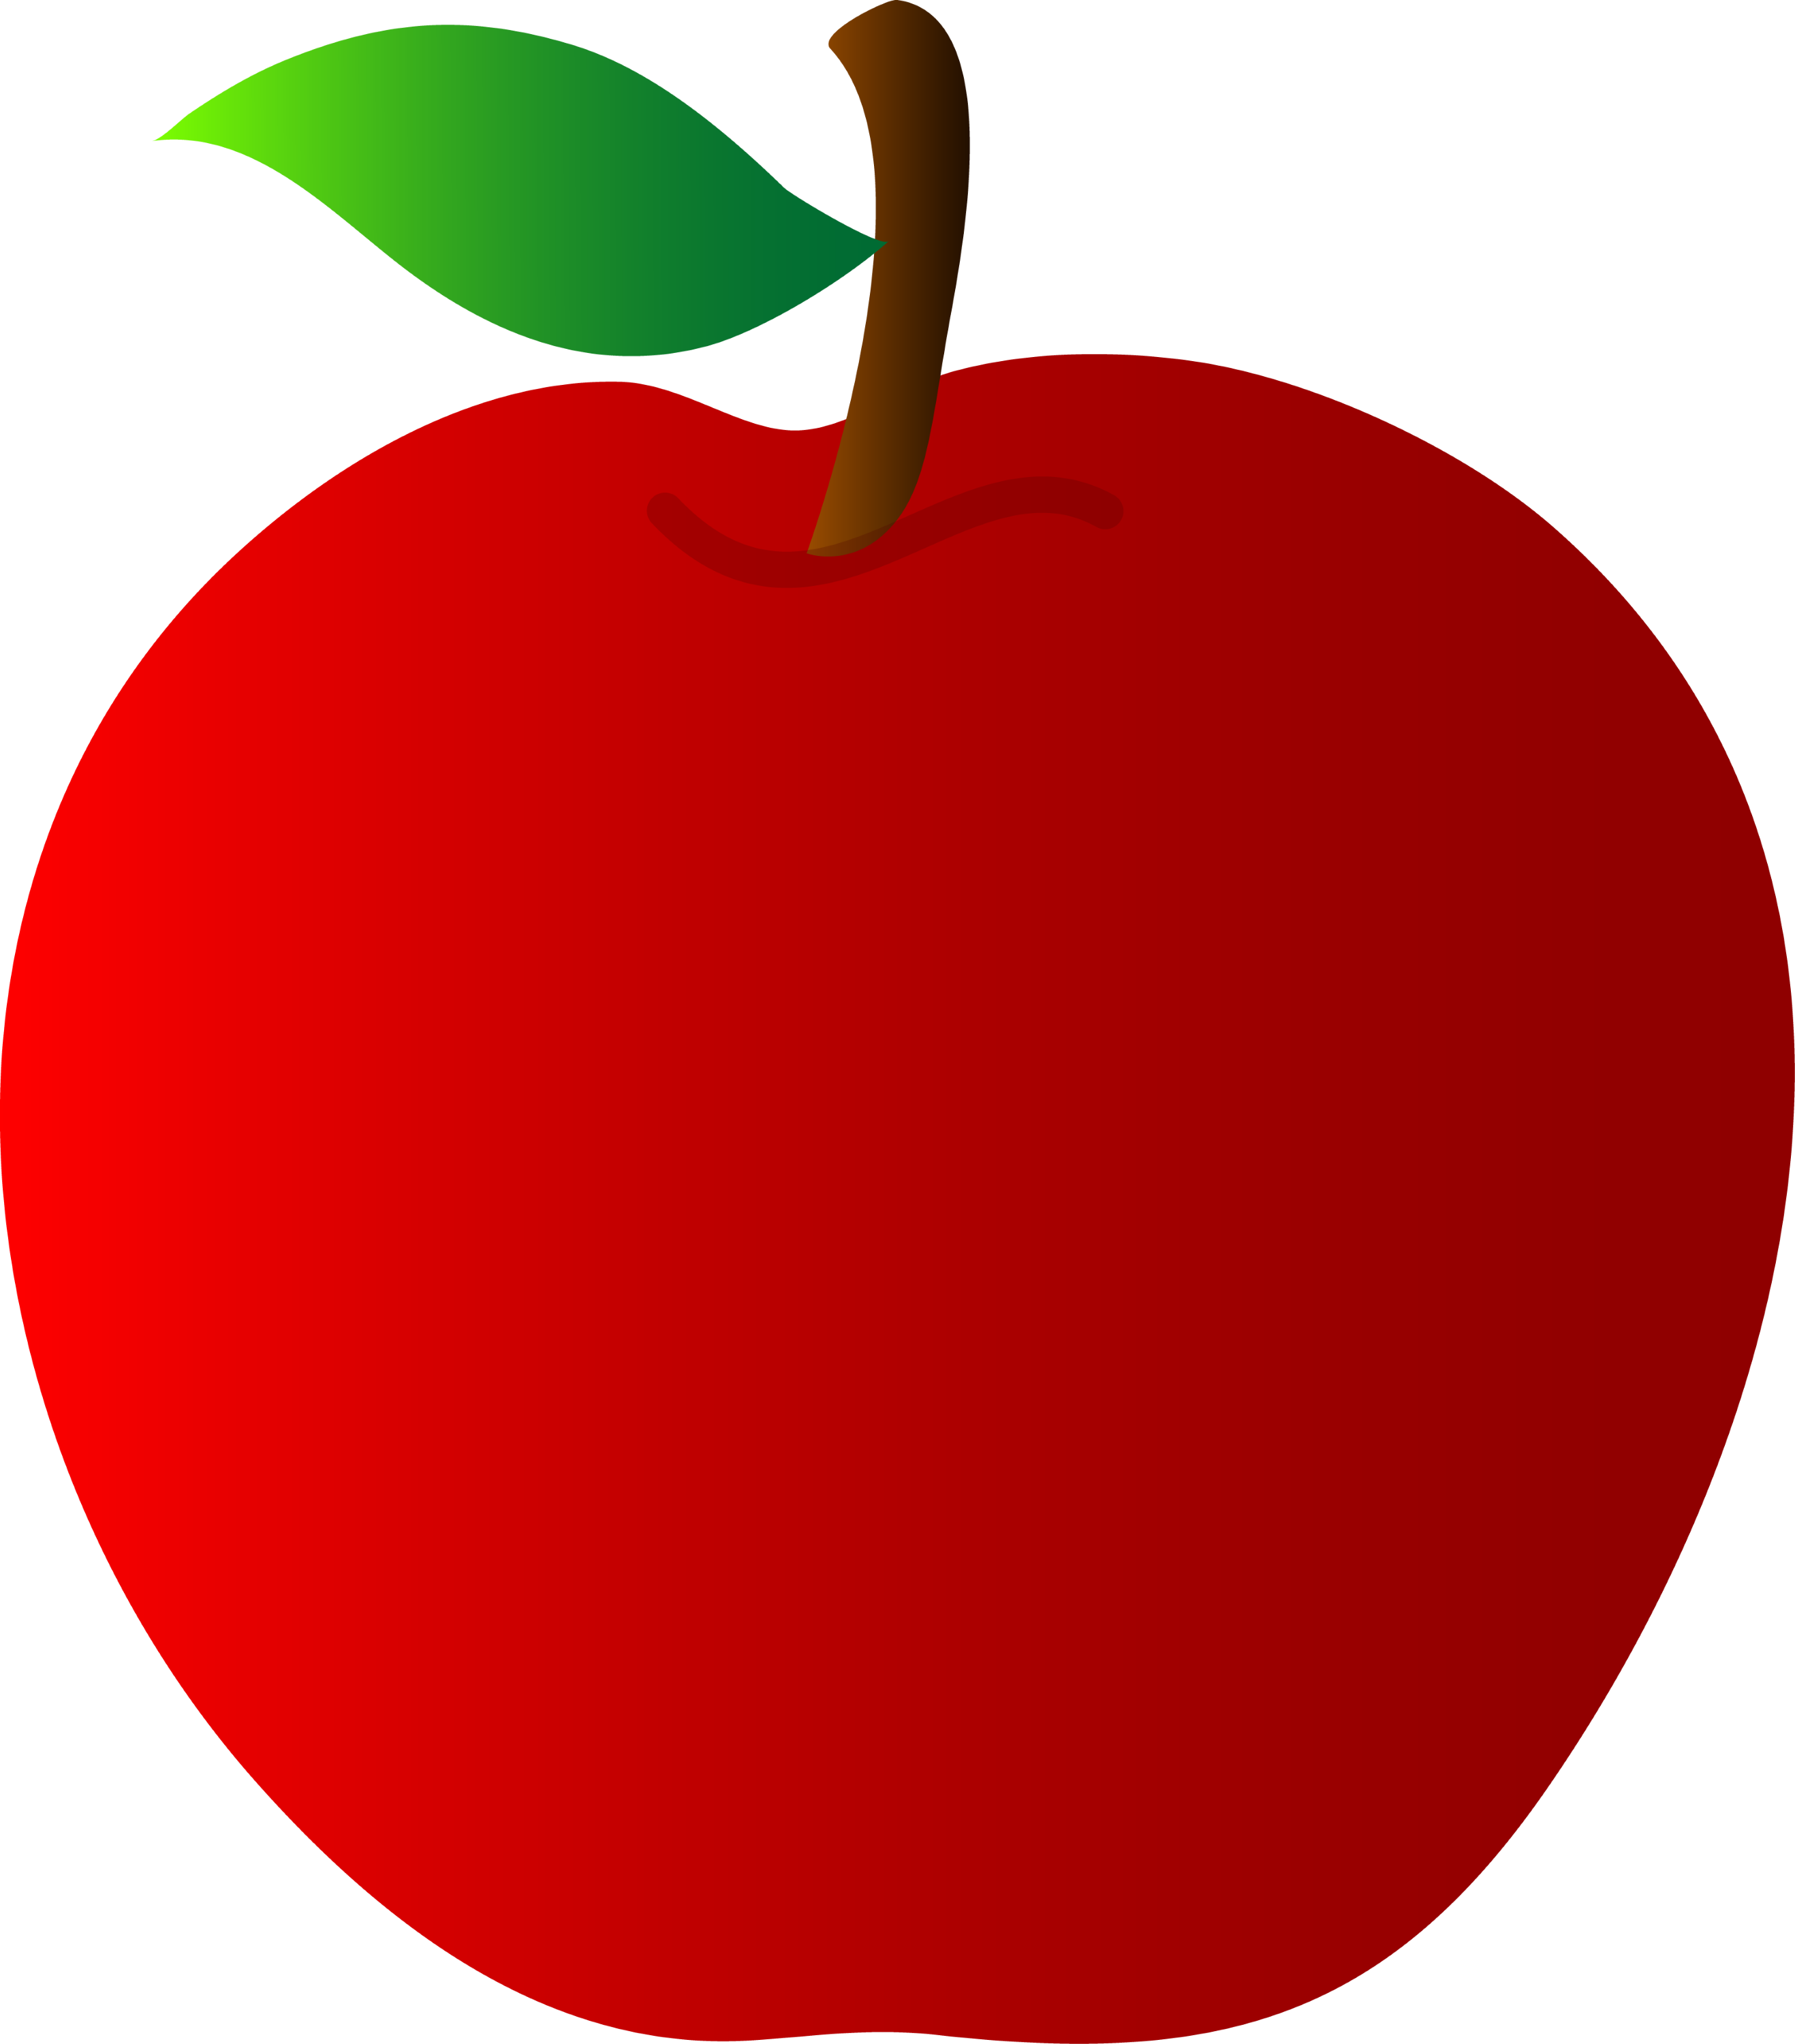 red apple vector art free clip art rh sweetclipart com red and green apple clipart red rose apple clipart